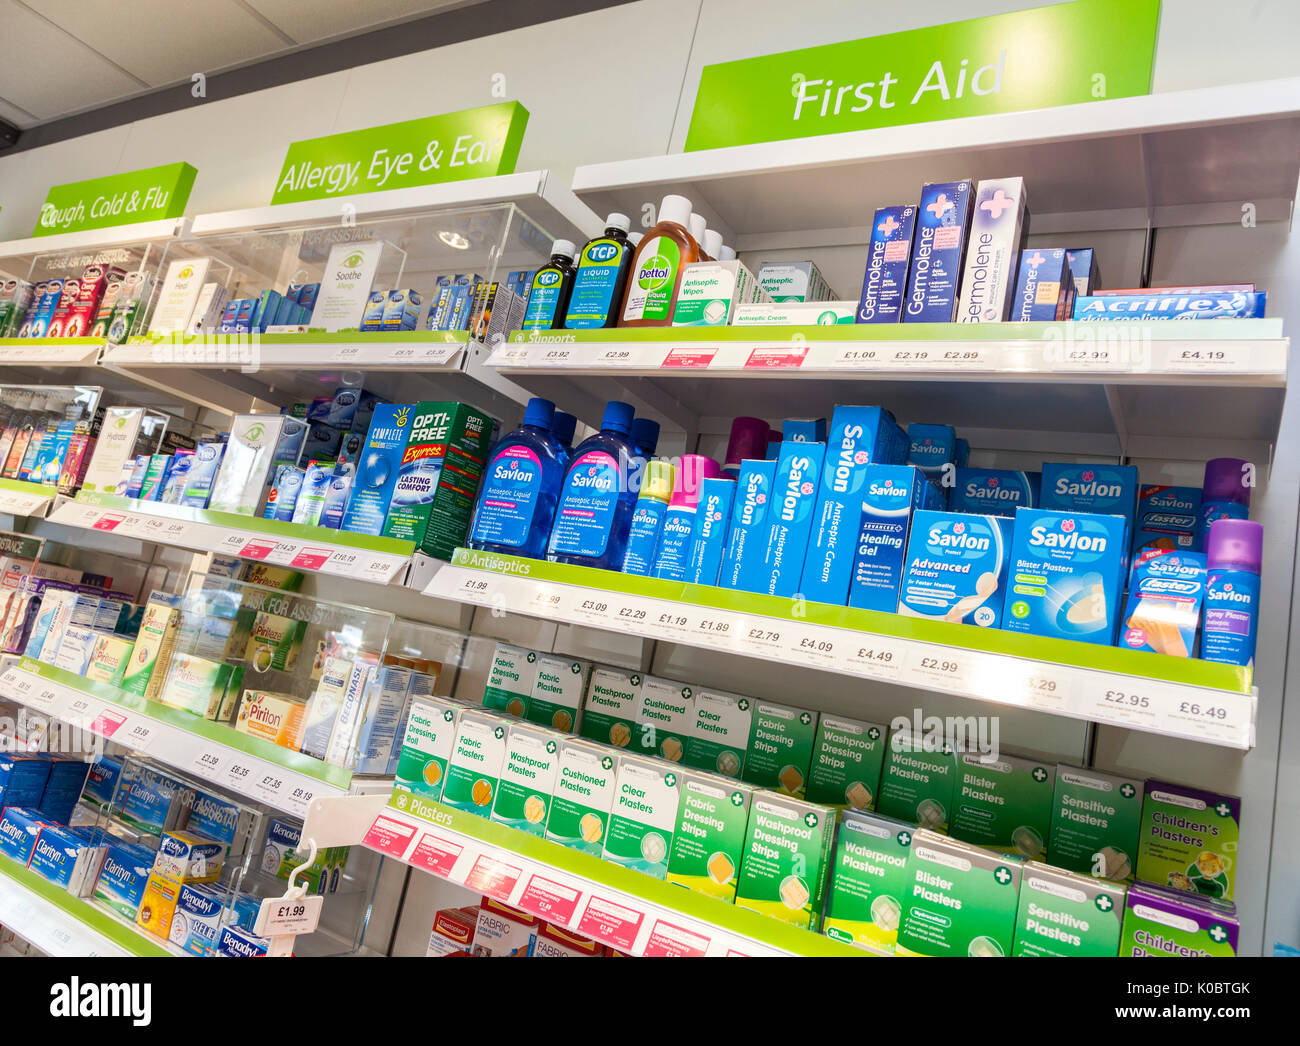 Cough,cold,flu remedies,allergy products,first aid on display in a chemist shop,pharmacy shelf,pharmacists,drug store - Stock Image